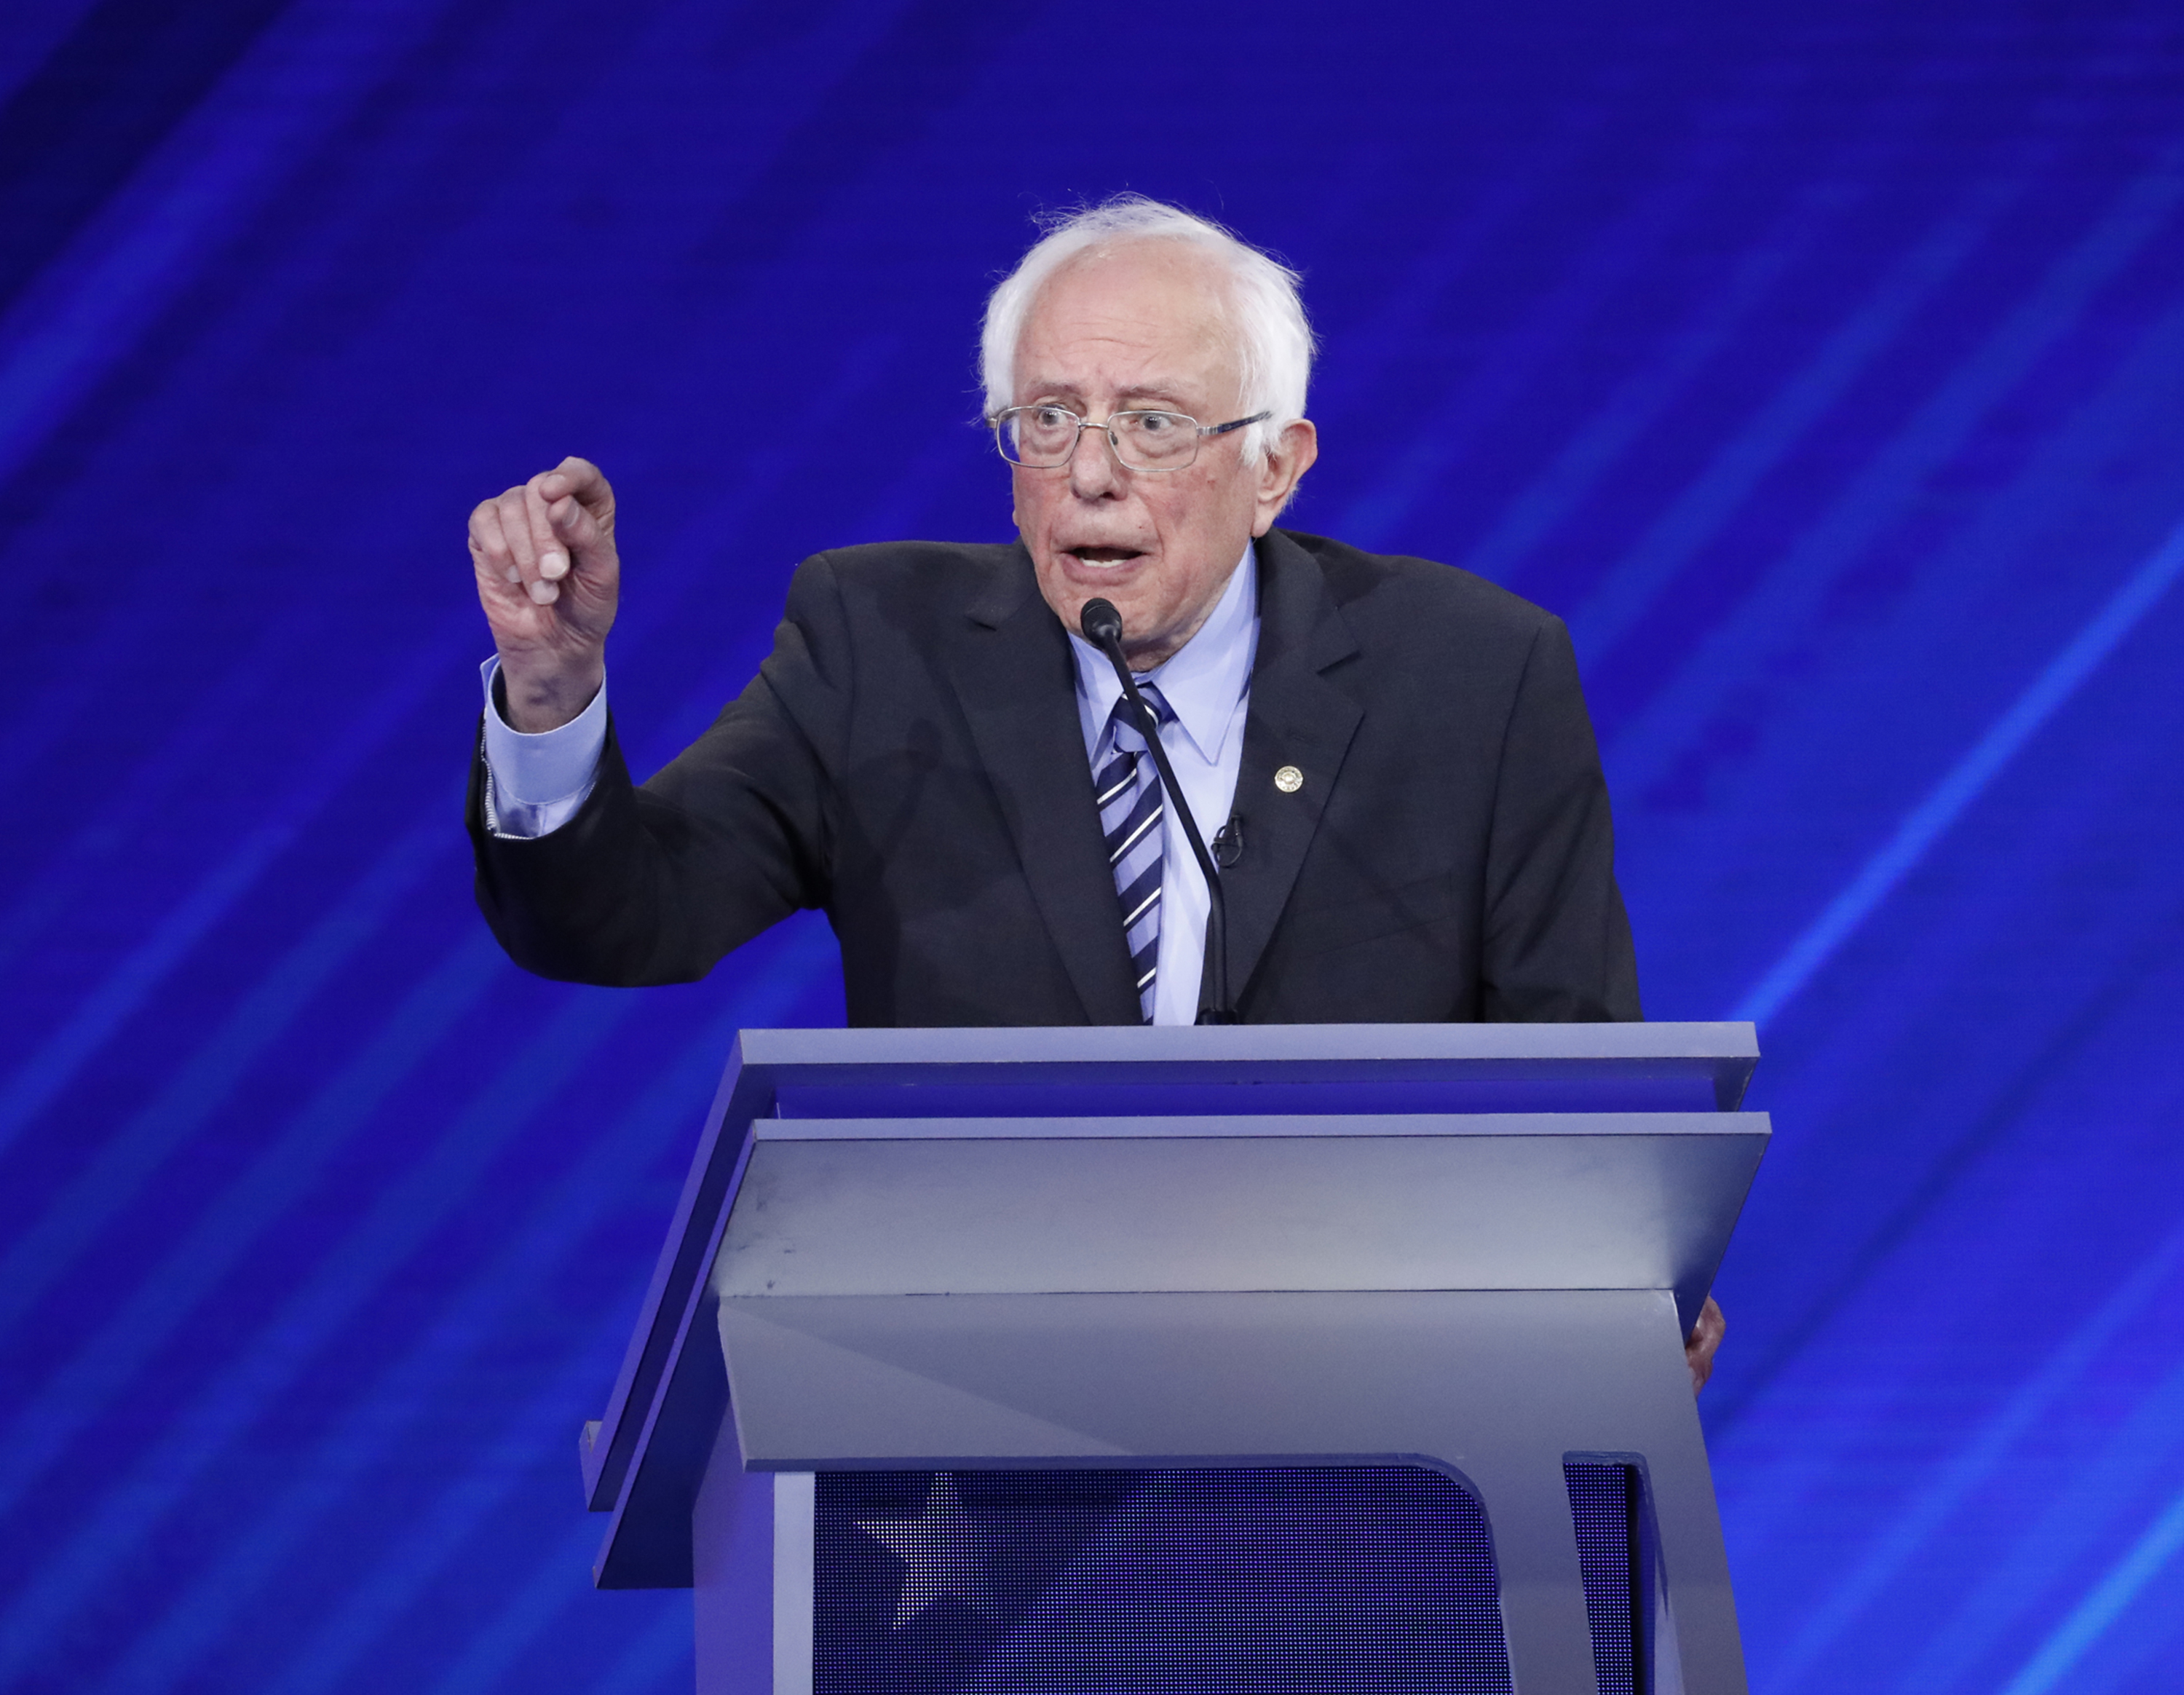 Bernie Sanders says 'housing must be a right' with $2.5 trillion plan